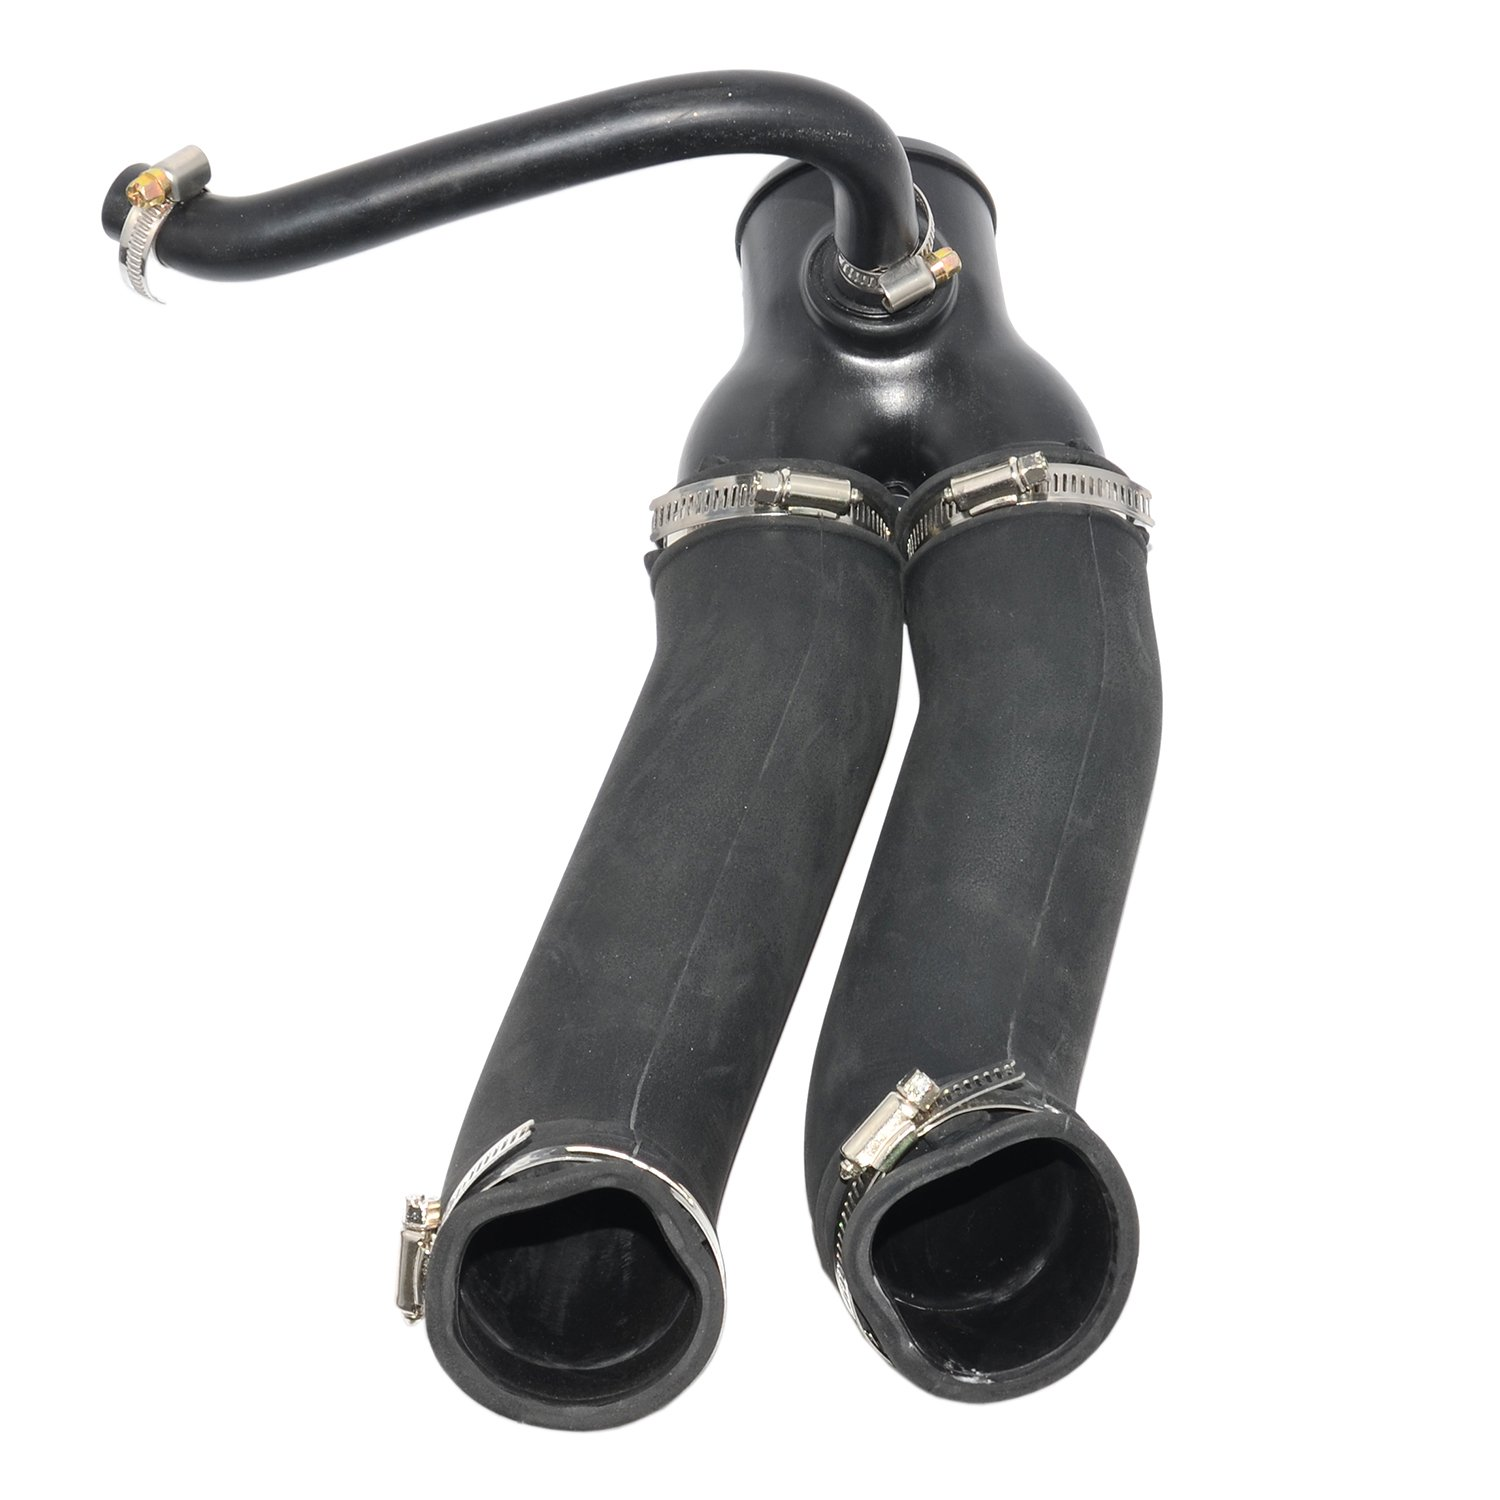 Air Cleaner Duct Hose Fit For Ford F150 F250 F350 Bronco 5.0L 5.8L F6TZ-9B659-AD